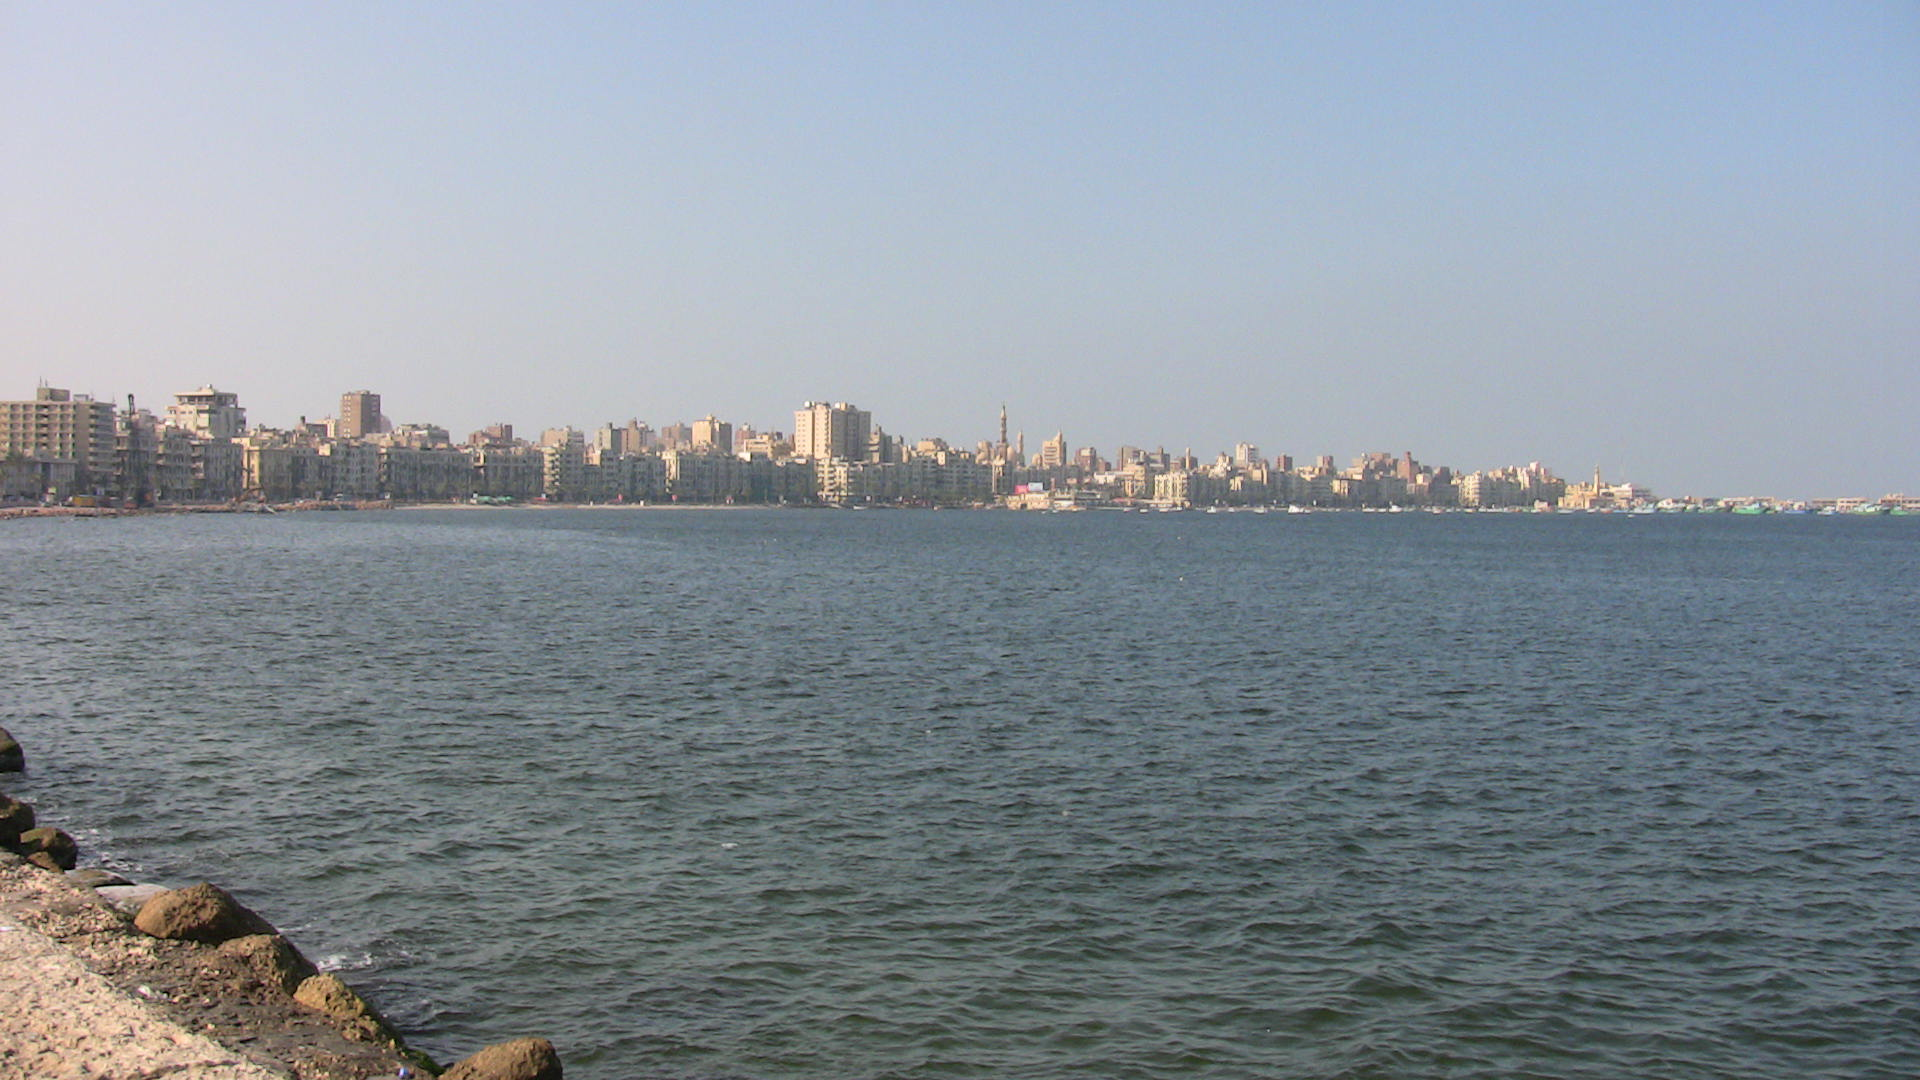 With about five million inhabitants, Alexandria is Egypt's second biggest city. A rise in sea levels of 50cm could lead to the loss of about 194,000 jobs and the displacement of about 1.5 million people.